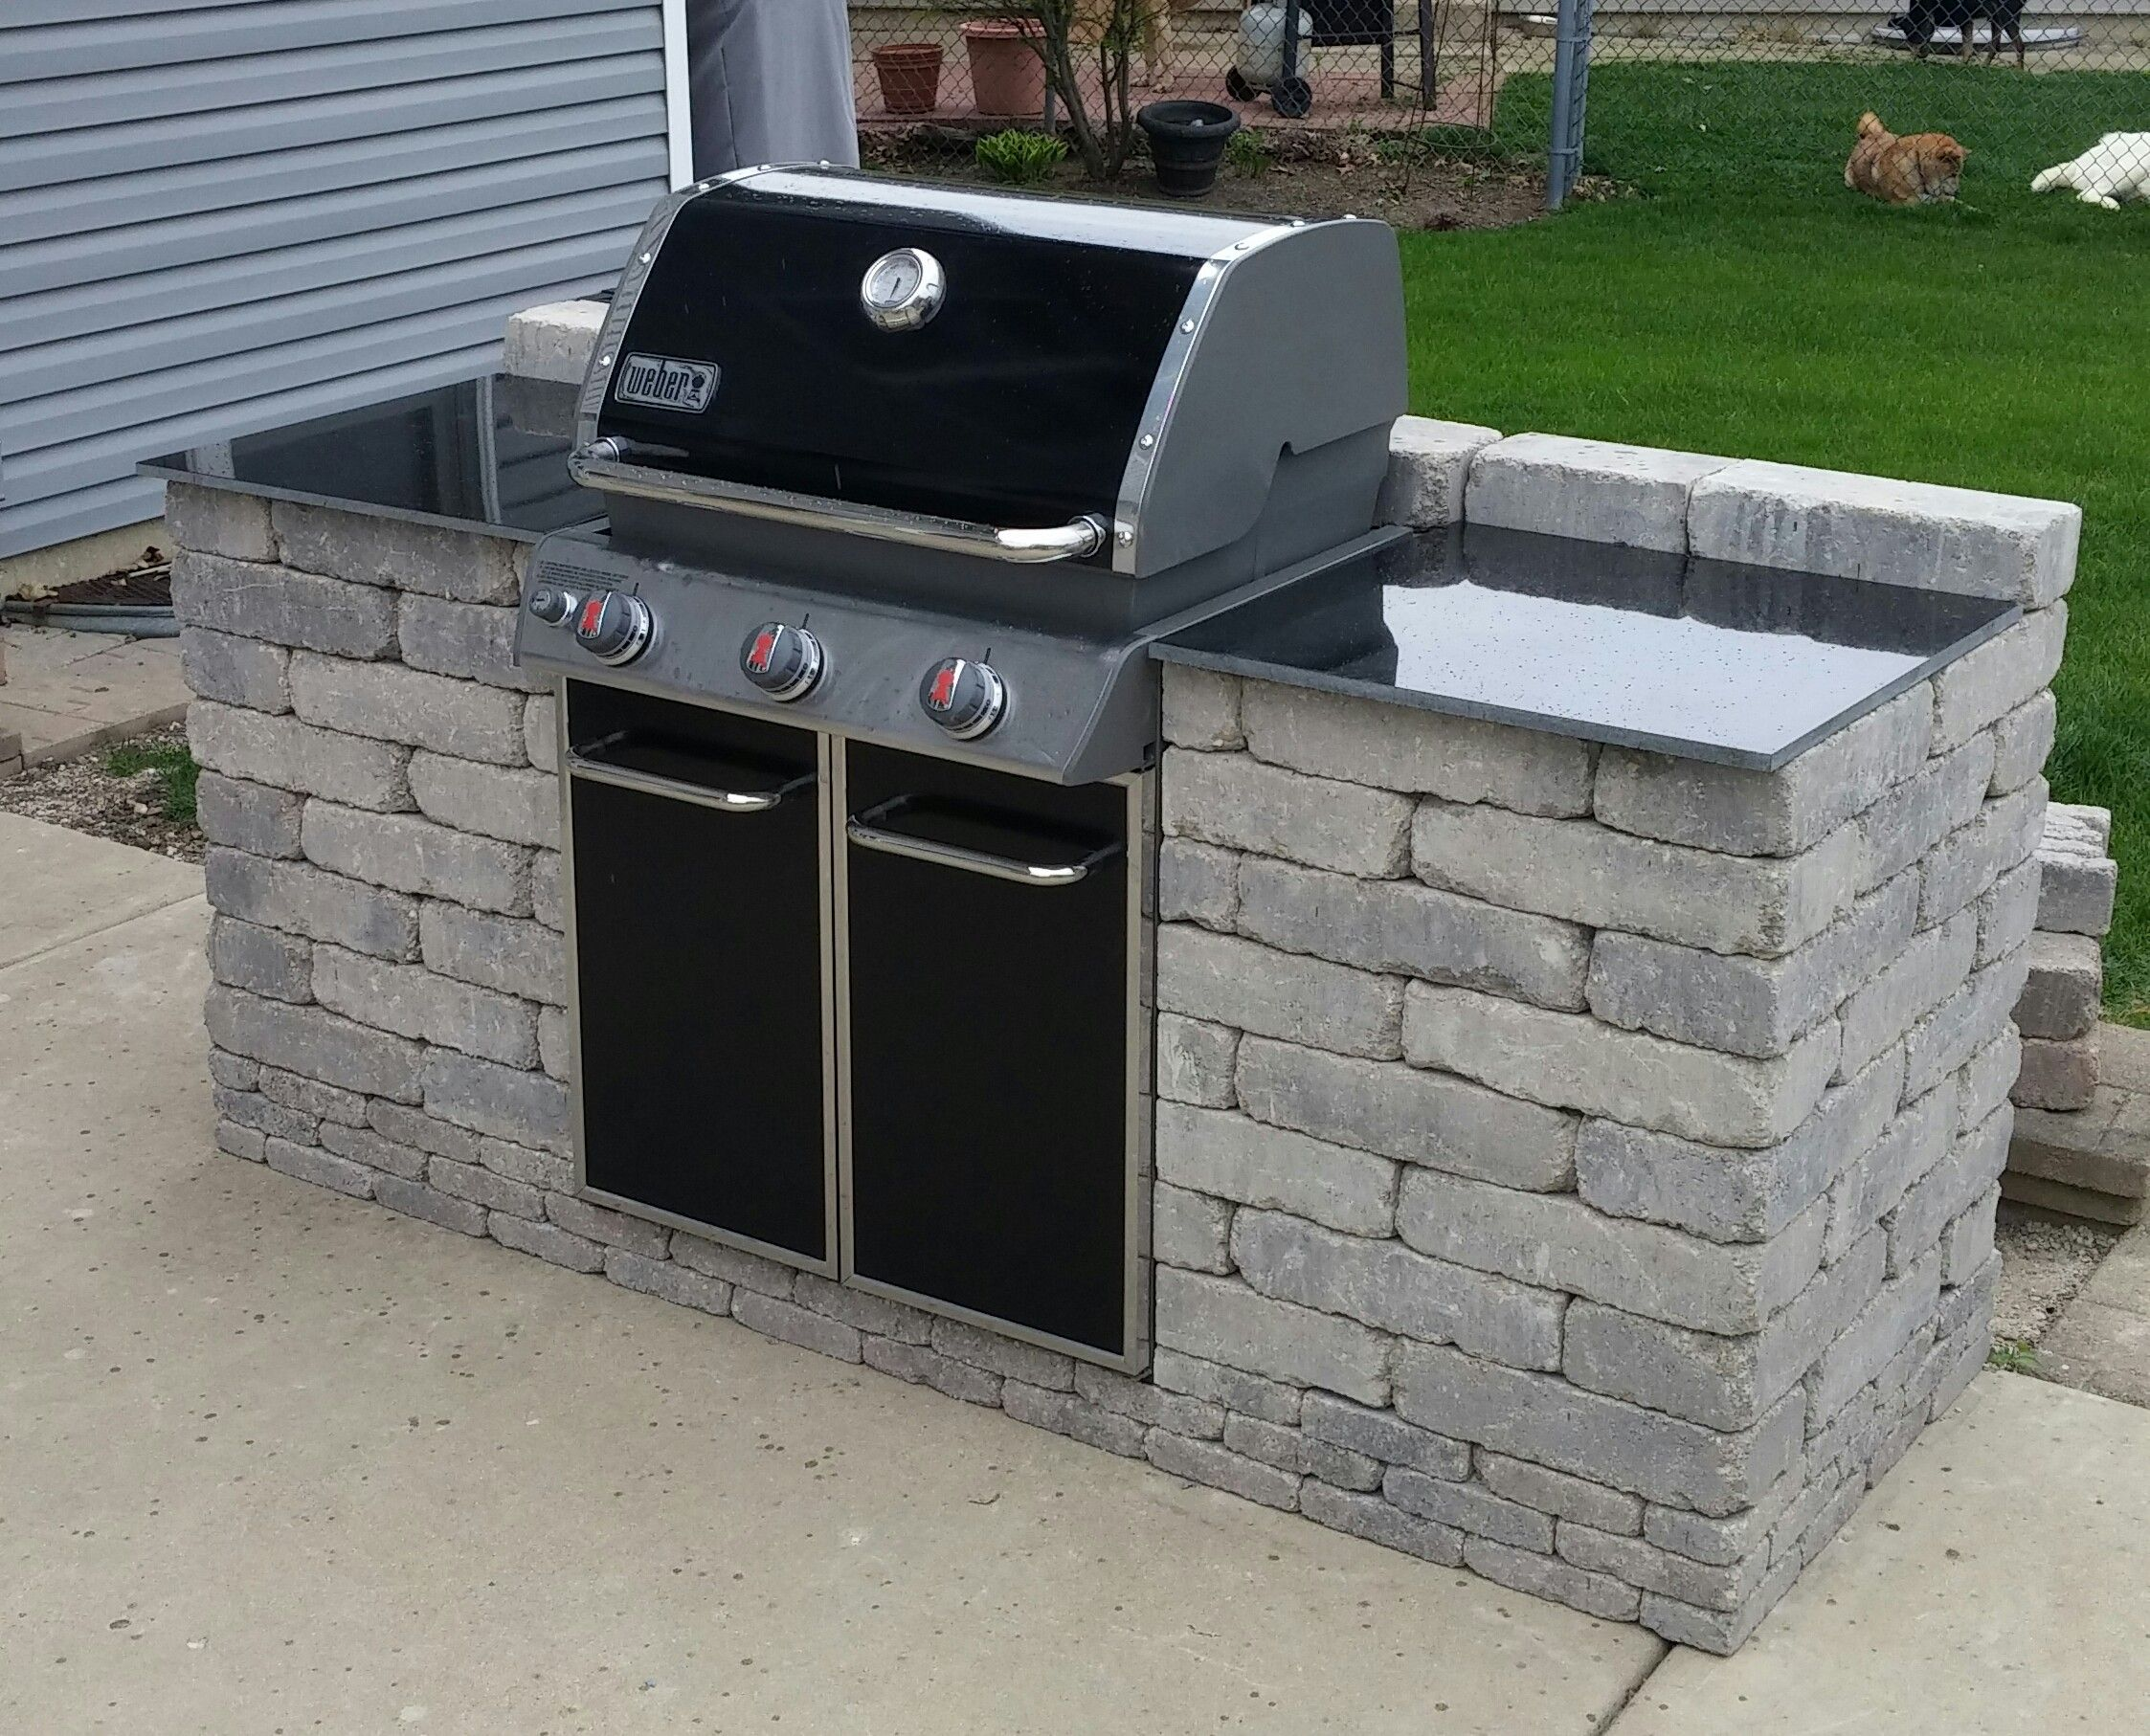 Barbeque Grill Enclosure Projects To Try Pinterest